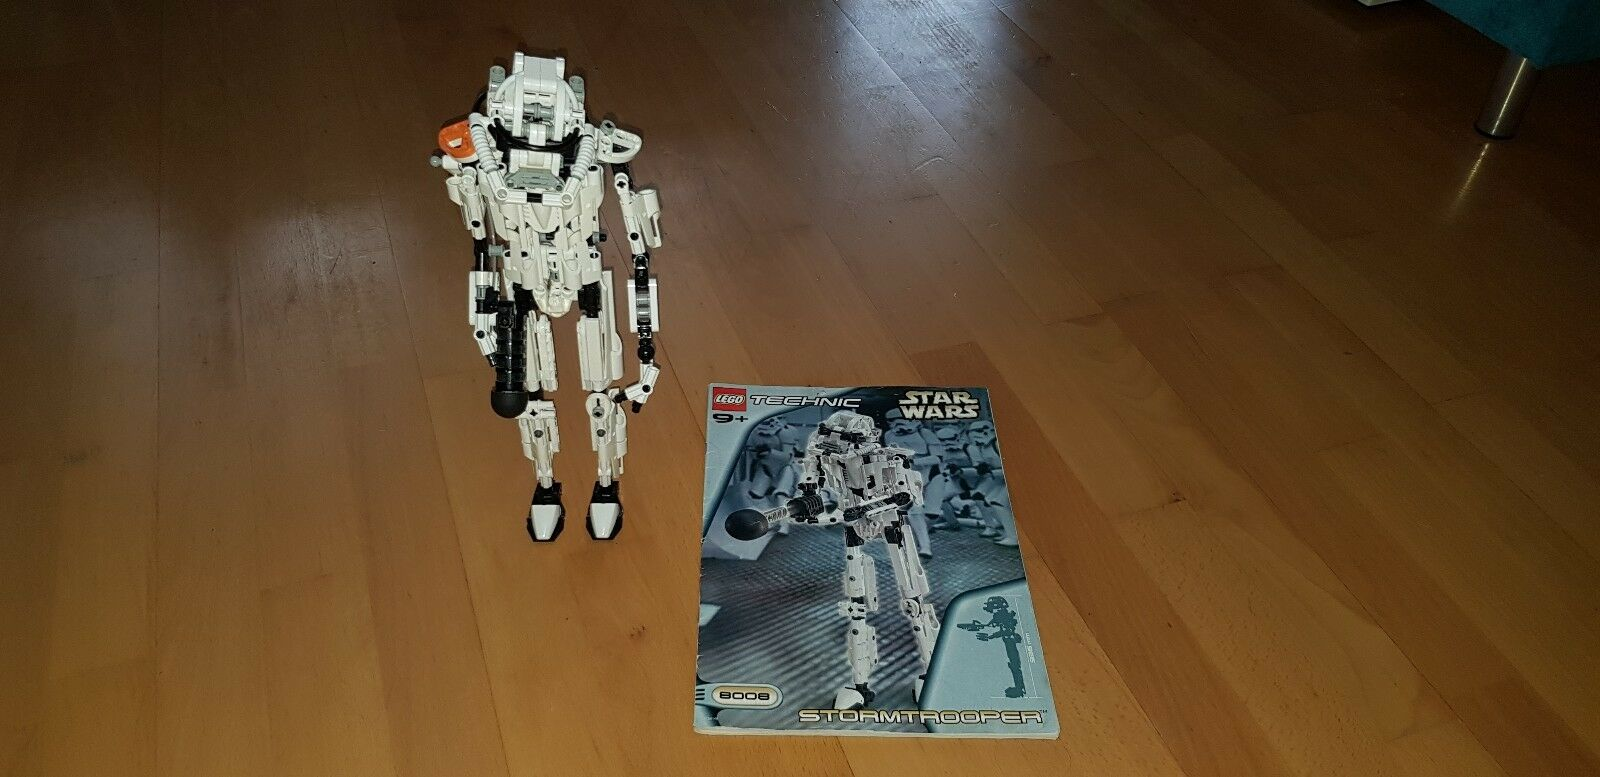 Lego Technic 8008 - Star Wars Storm Trooper